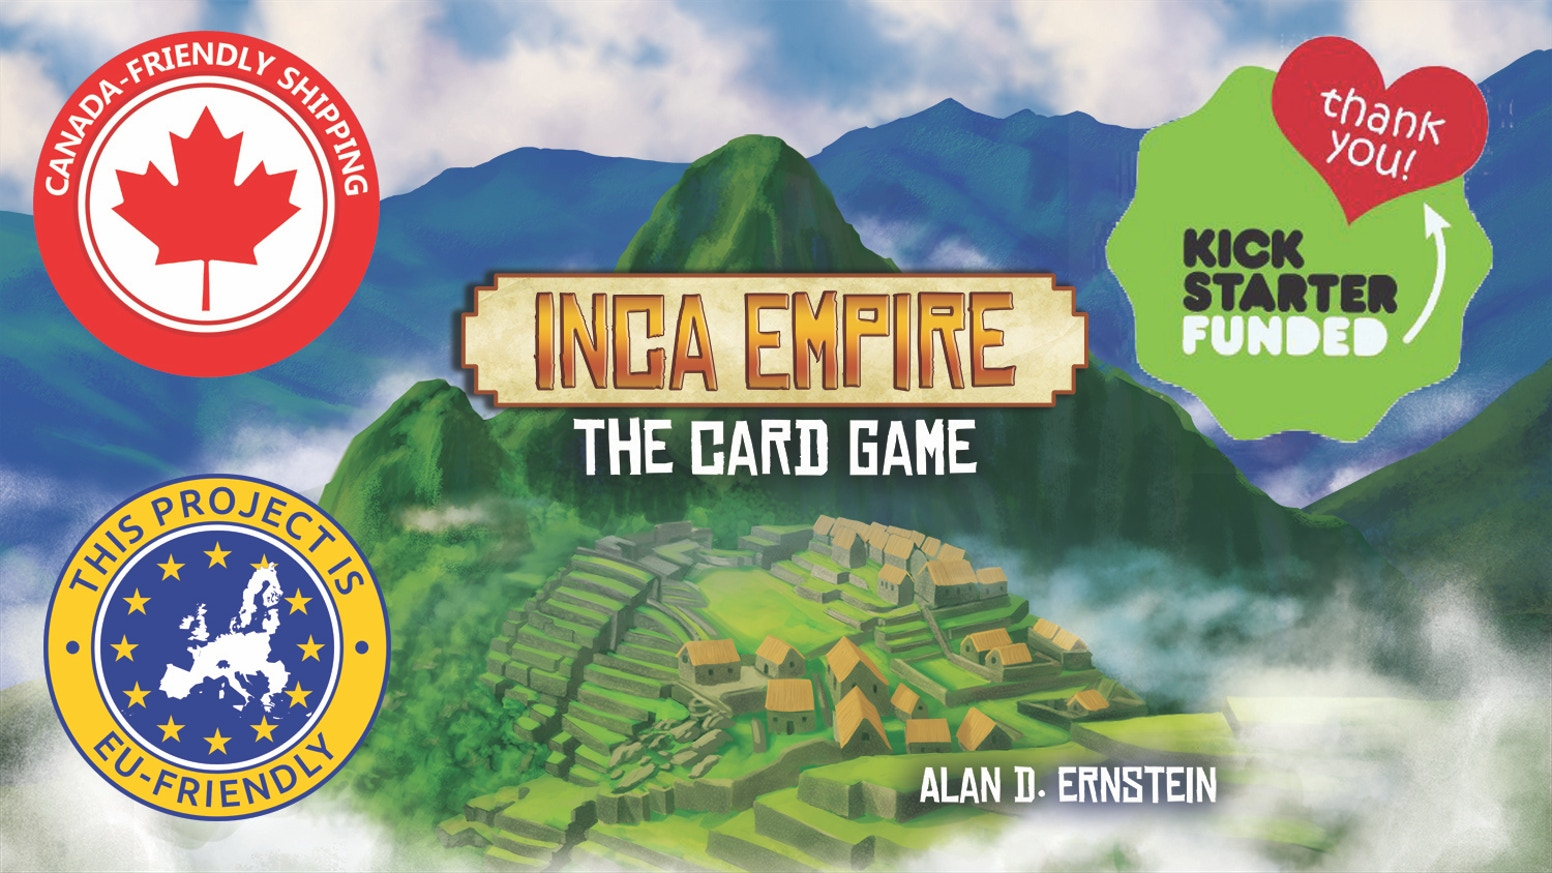 The Empire building game based on the highly acclaimed board game. Designed by Alan D. Ernstein.